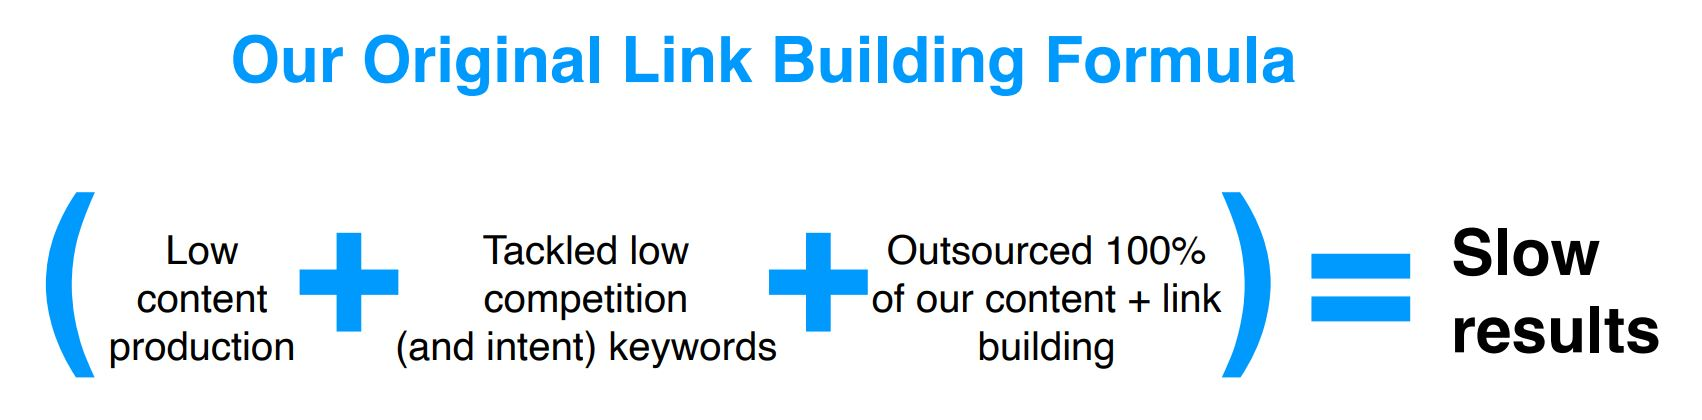 #INBOUND2021: Building Brand Credibility & Visibility Through Link Building